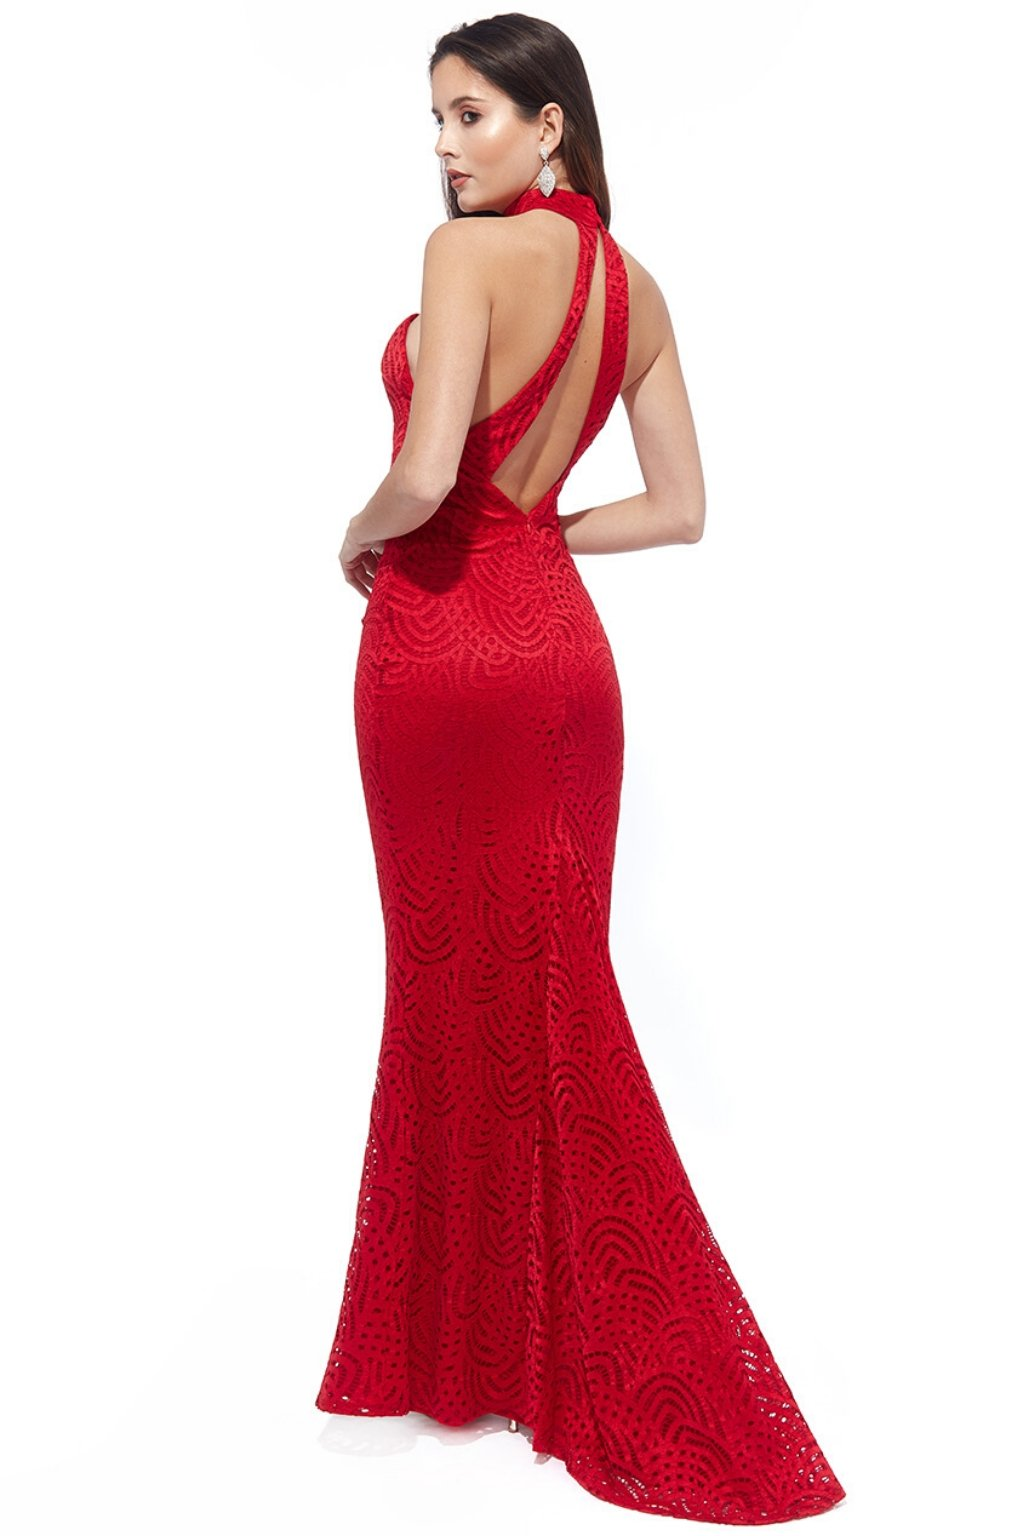 Red bodycon backless formal dress